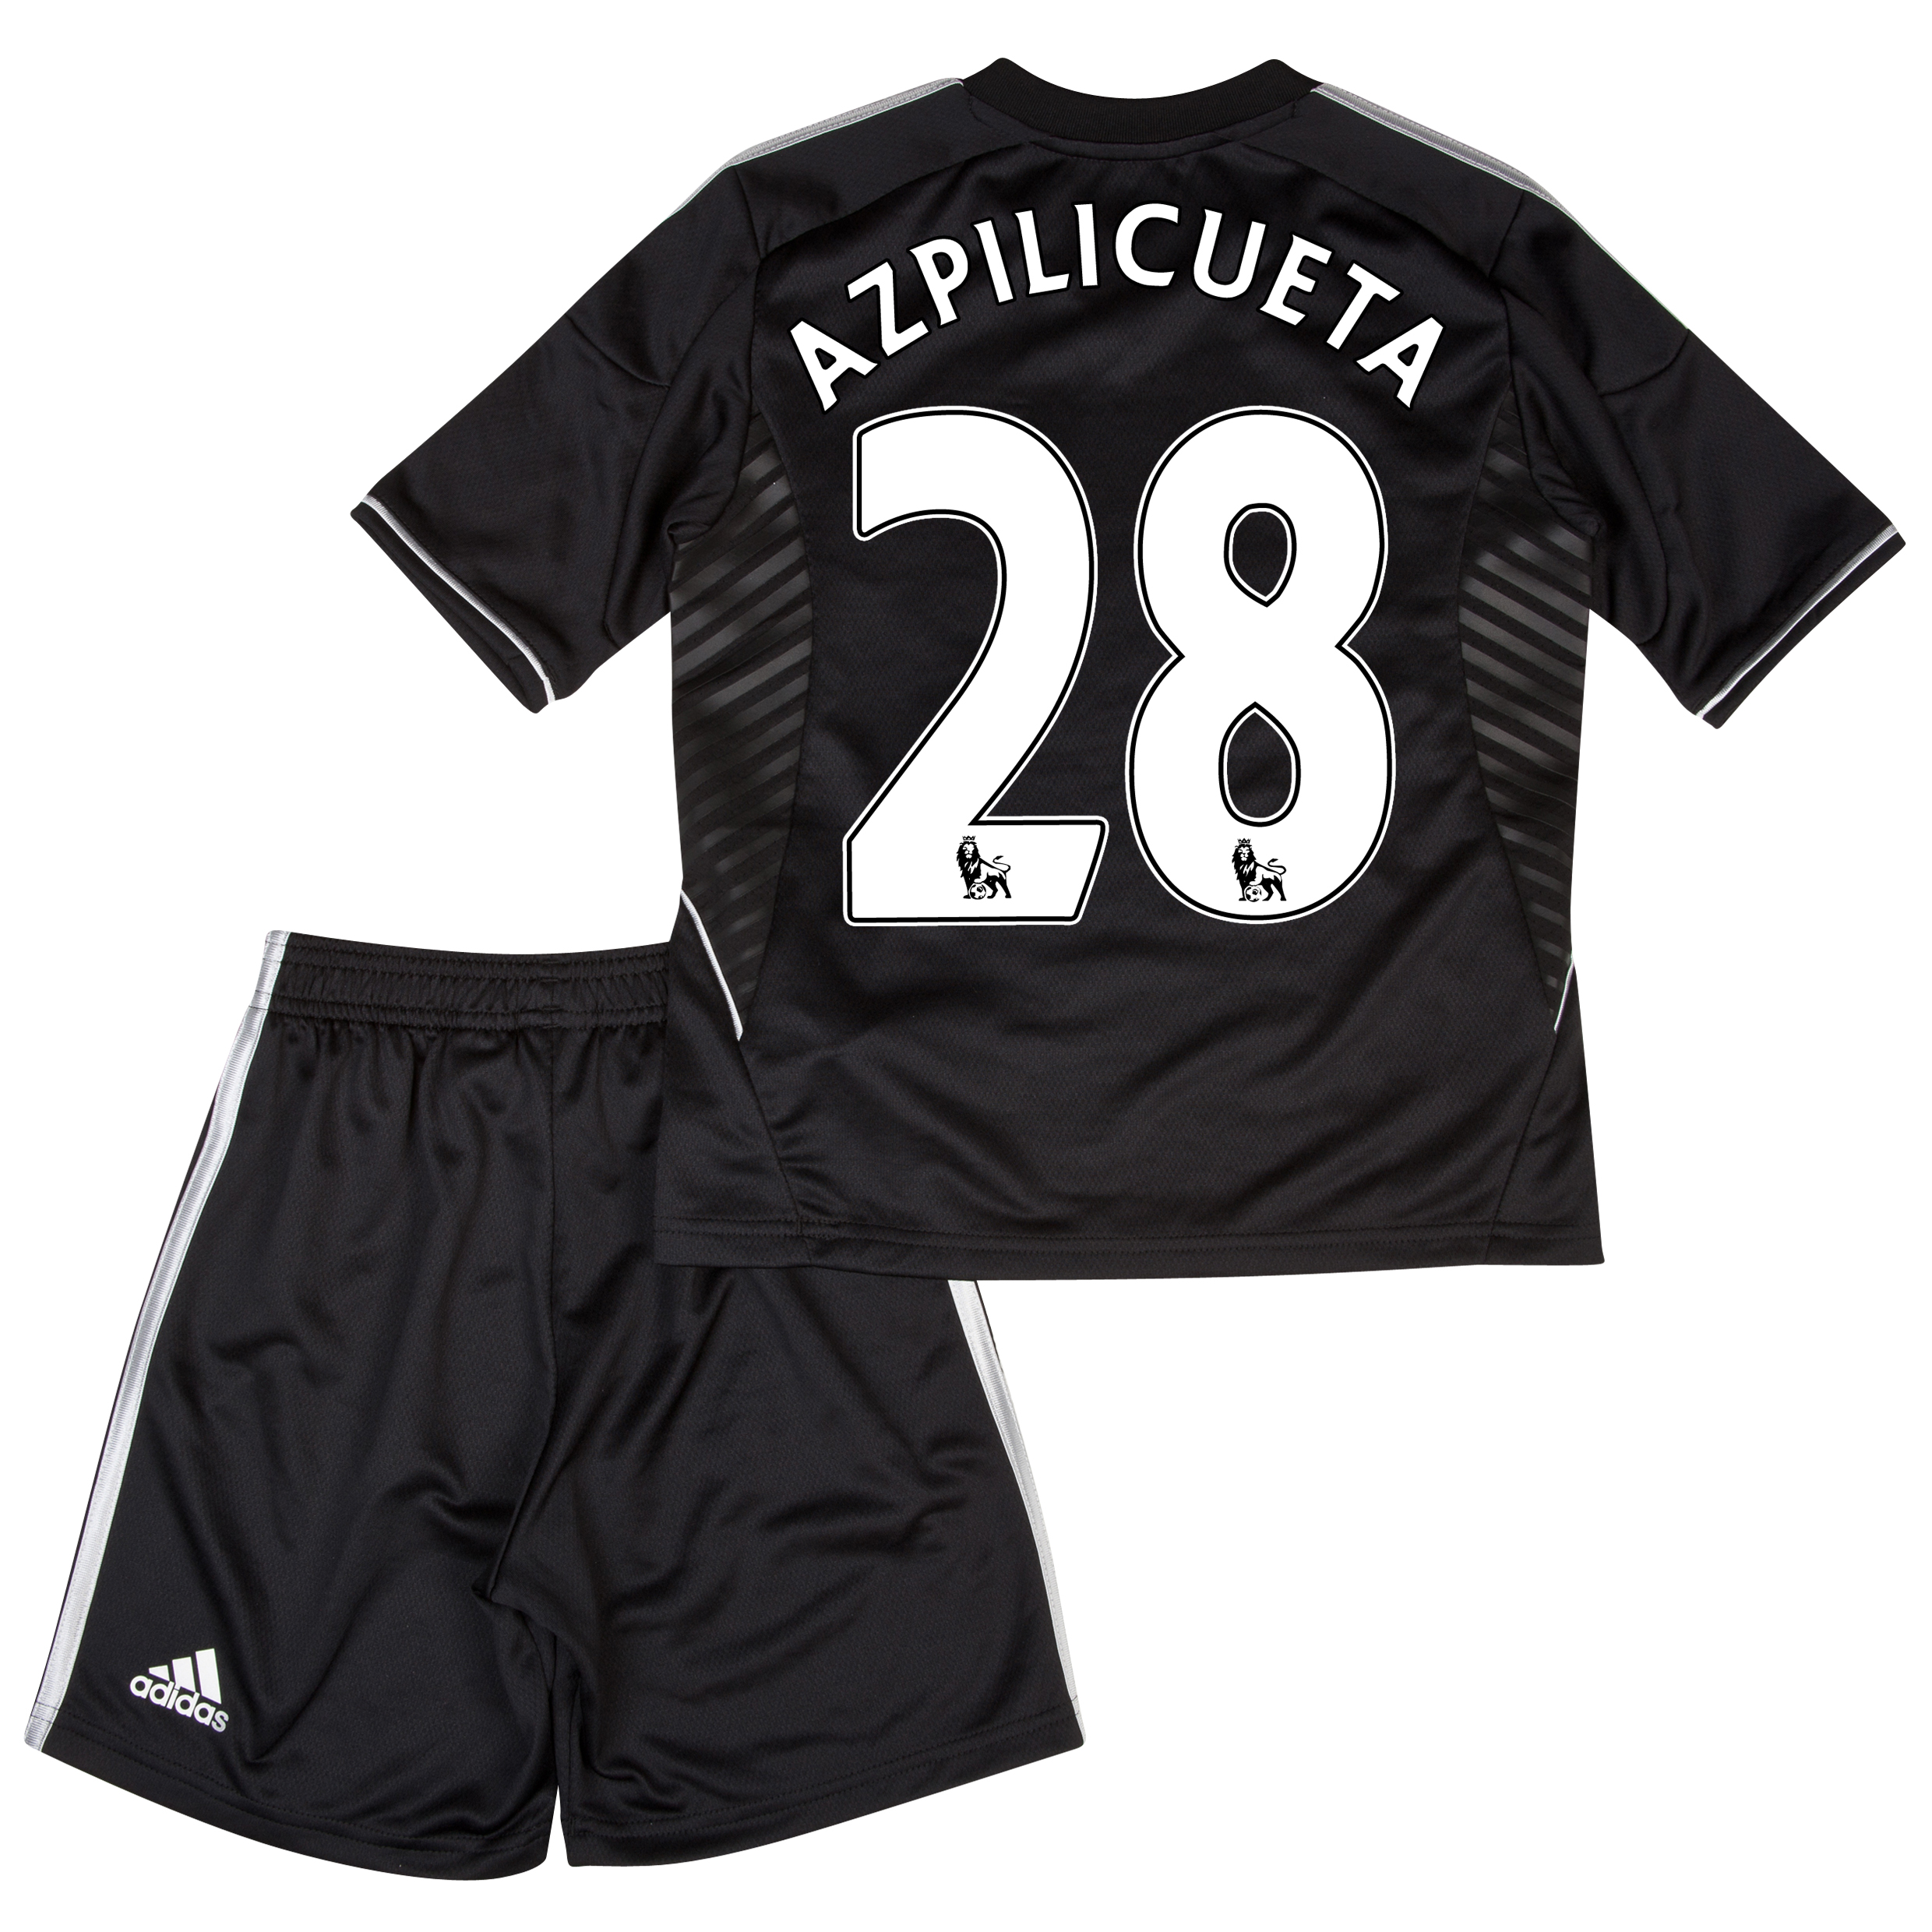 Chelsea Third Mini Kit 2013/14 with Azpilicueta 28 printing